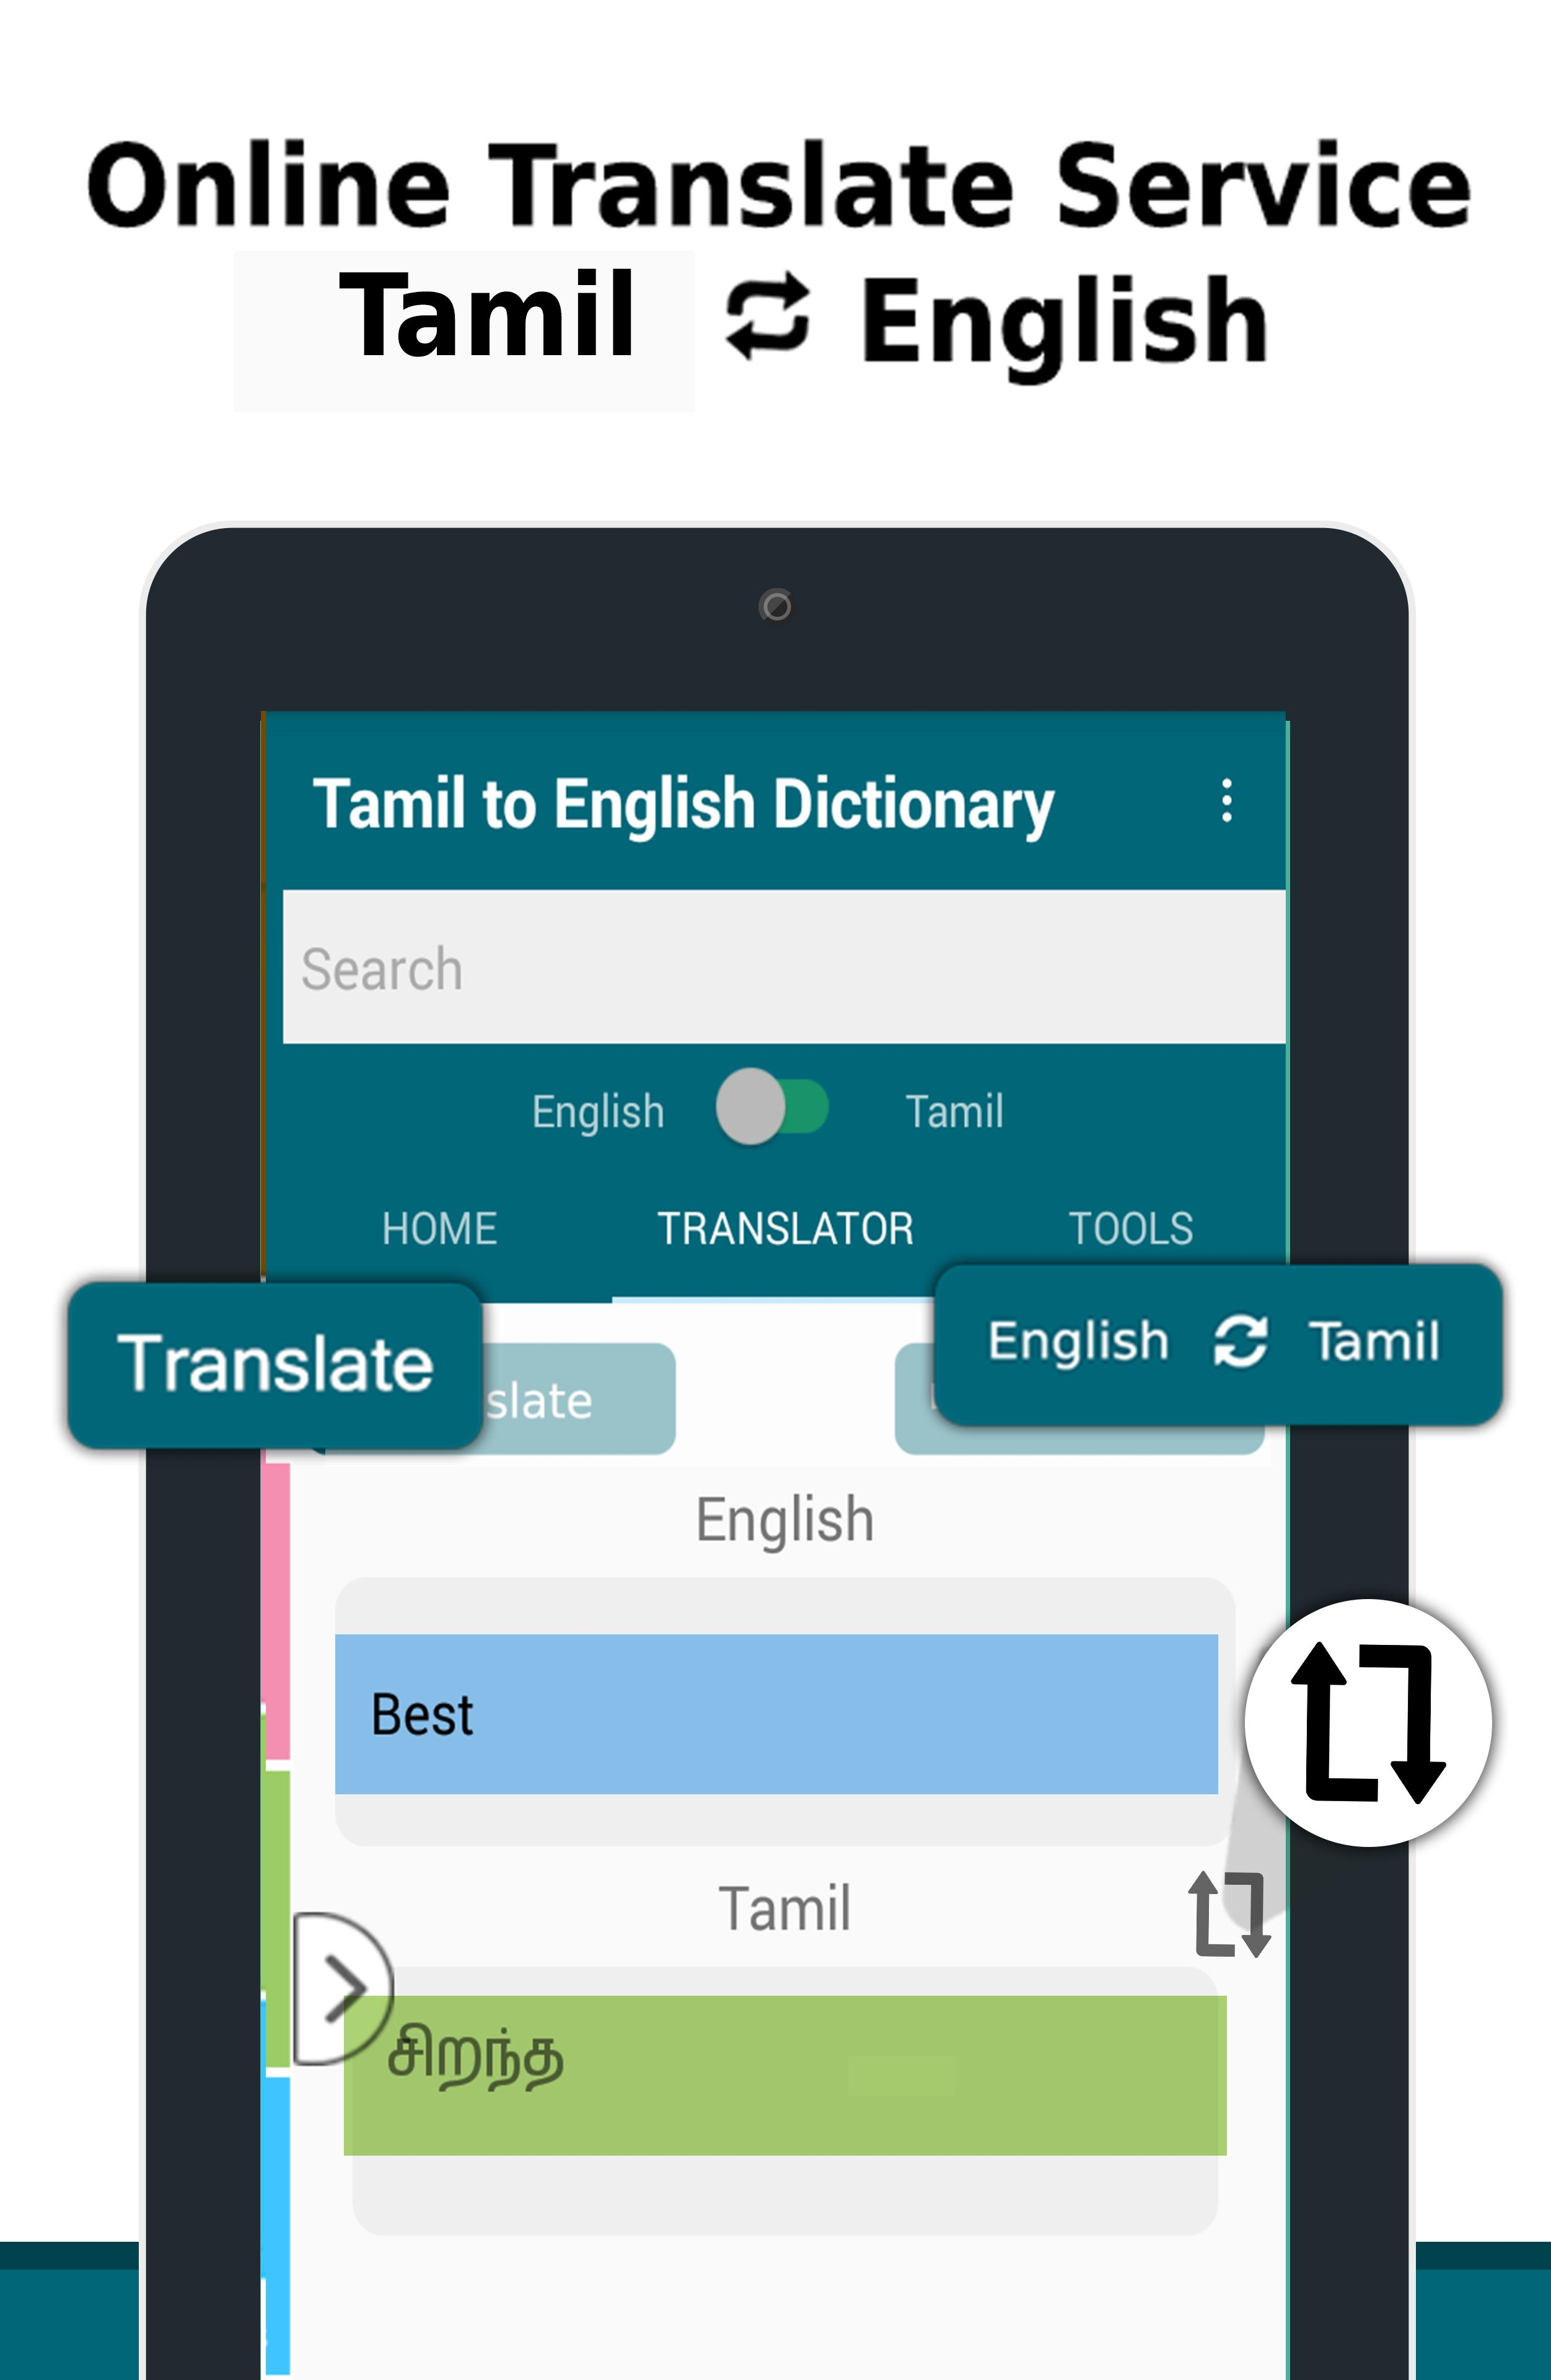 English to Tamil Dictionary & Translator for Android - APK Download